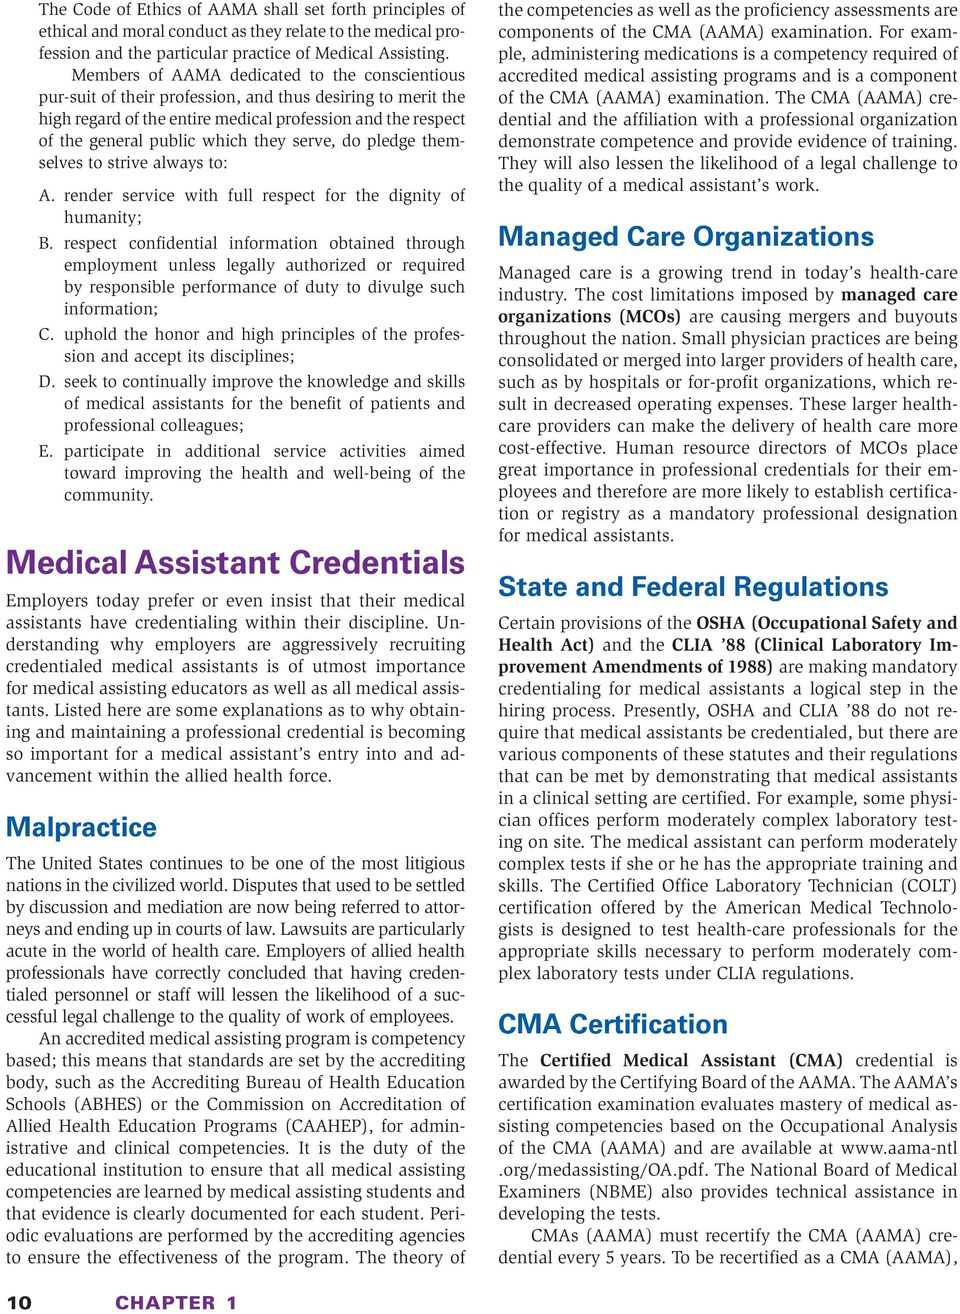 aama medical assistant code of ethics